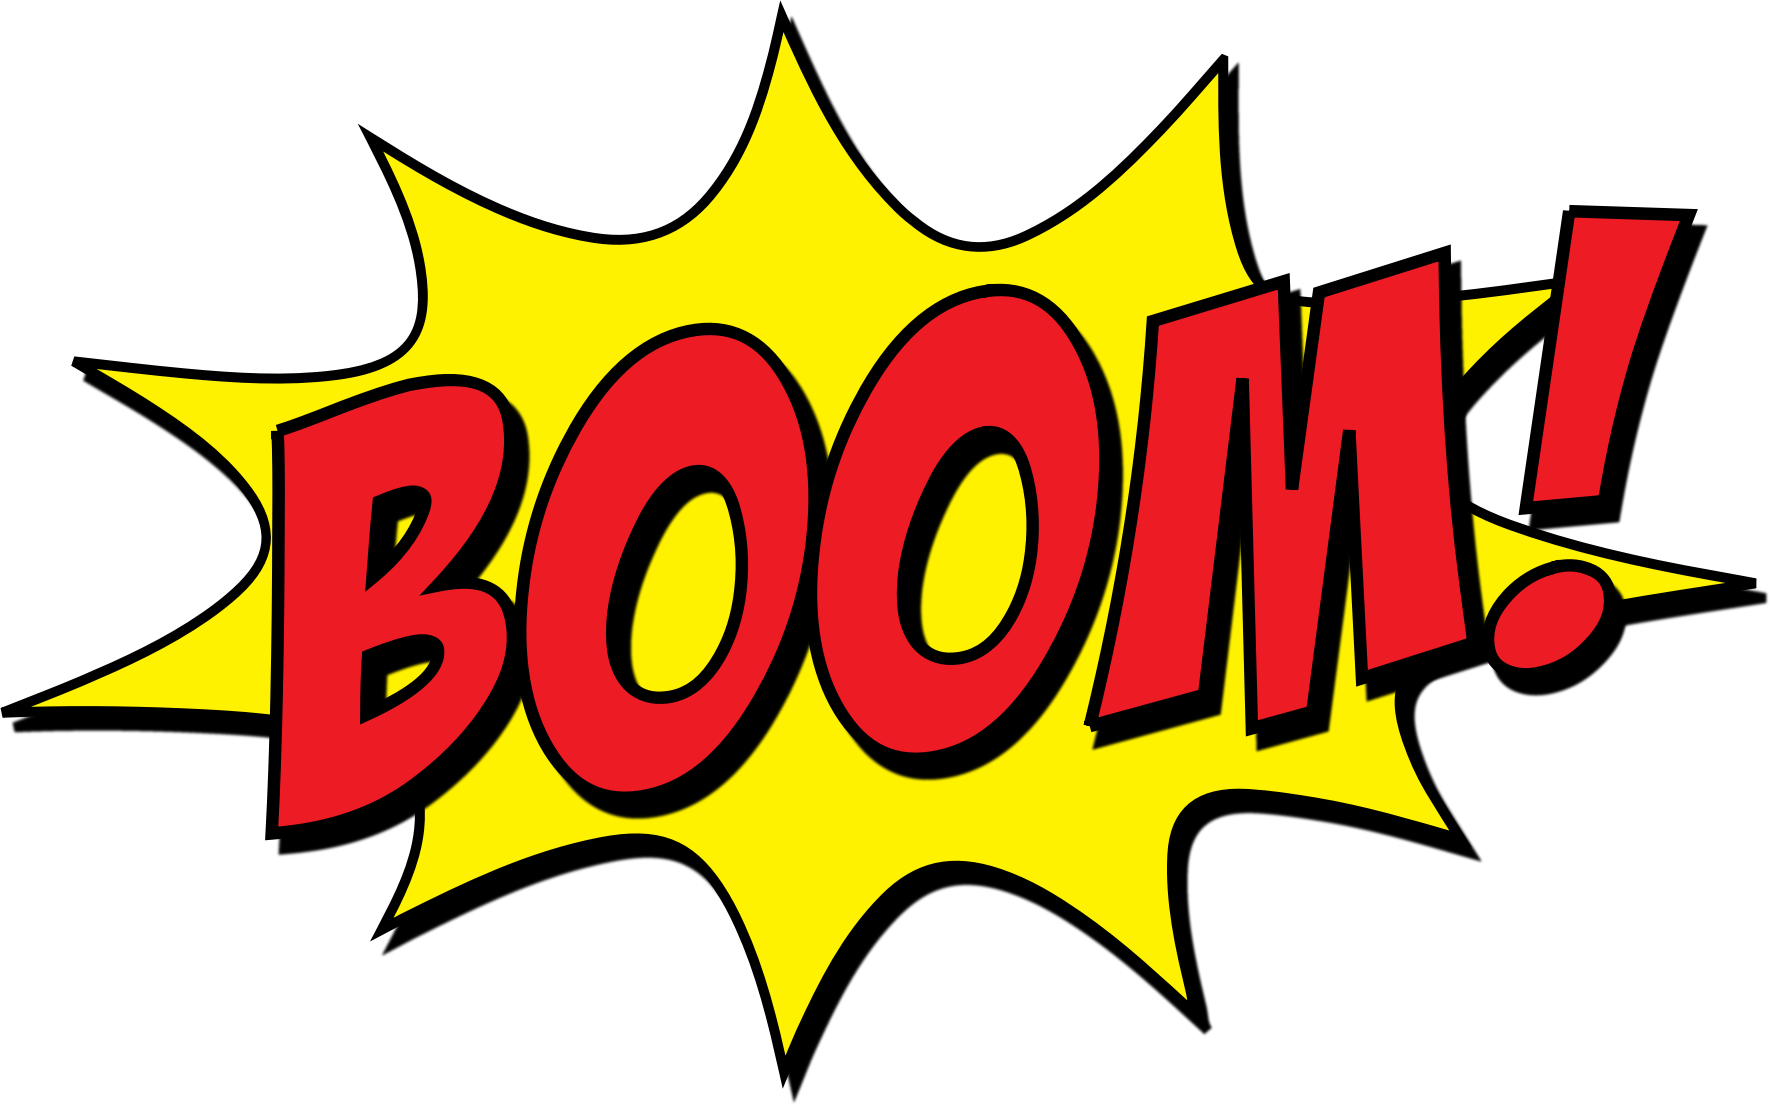 Boom clipart yellow. Big image png